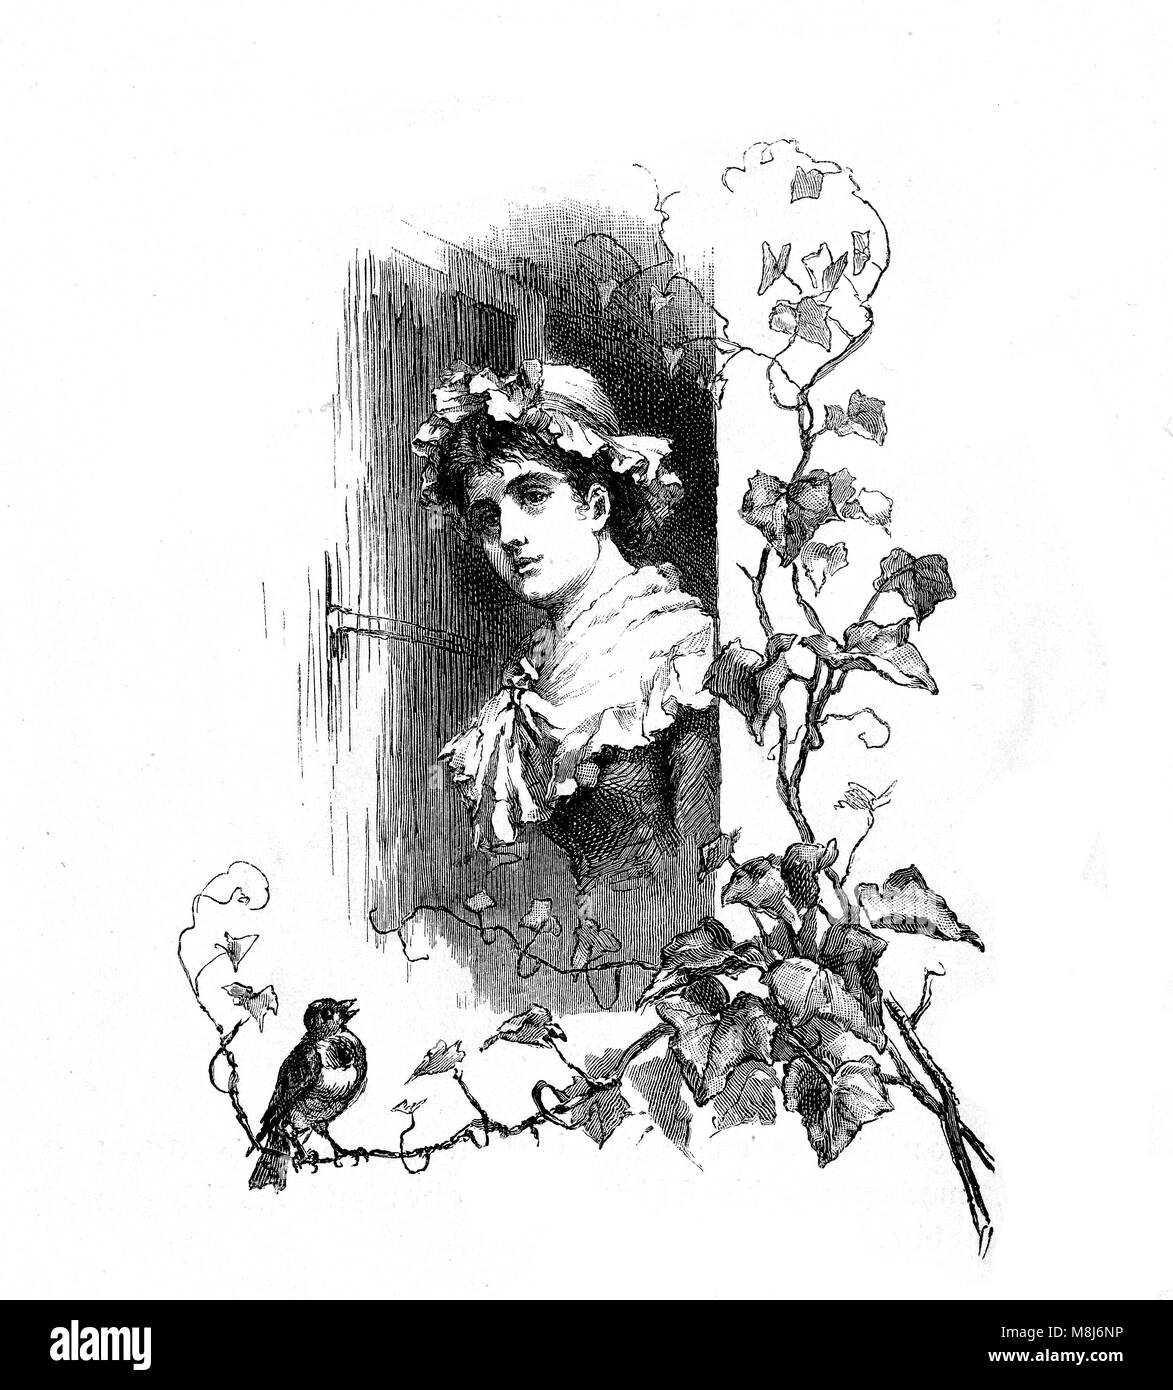 Spring again, lovely girl at the window and a bird chirping, vintage engraving - Stock Image